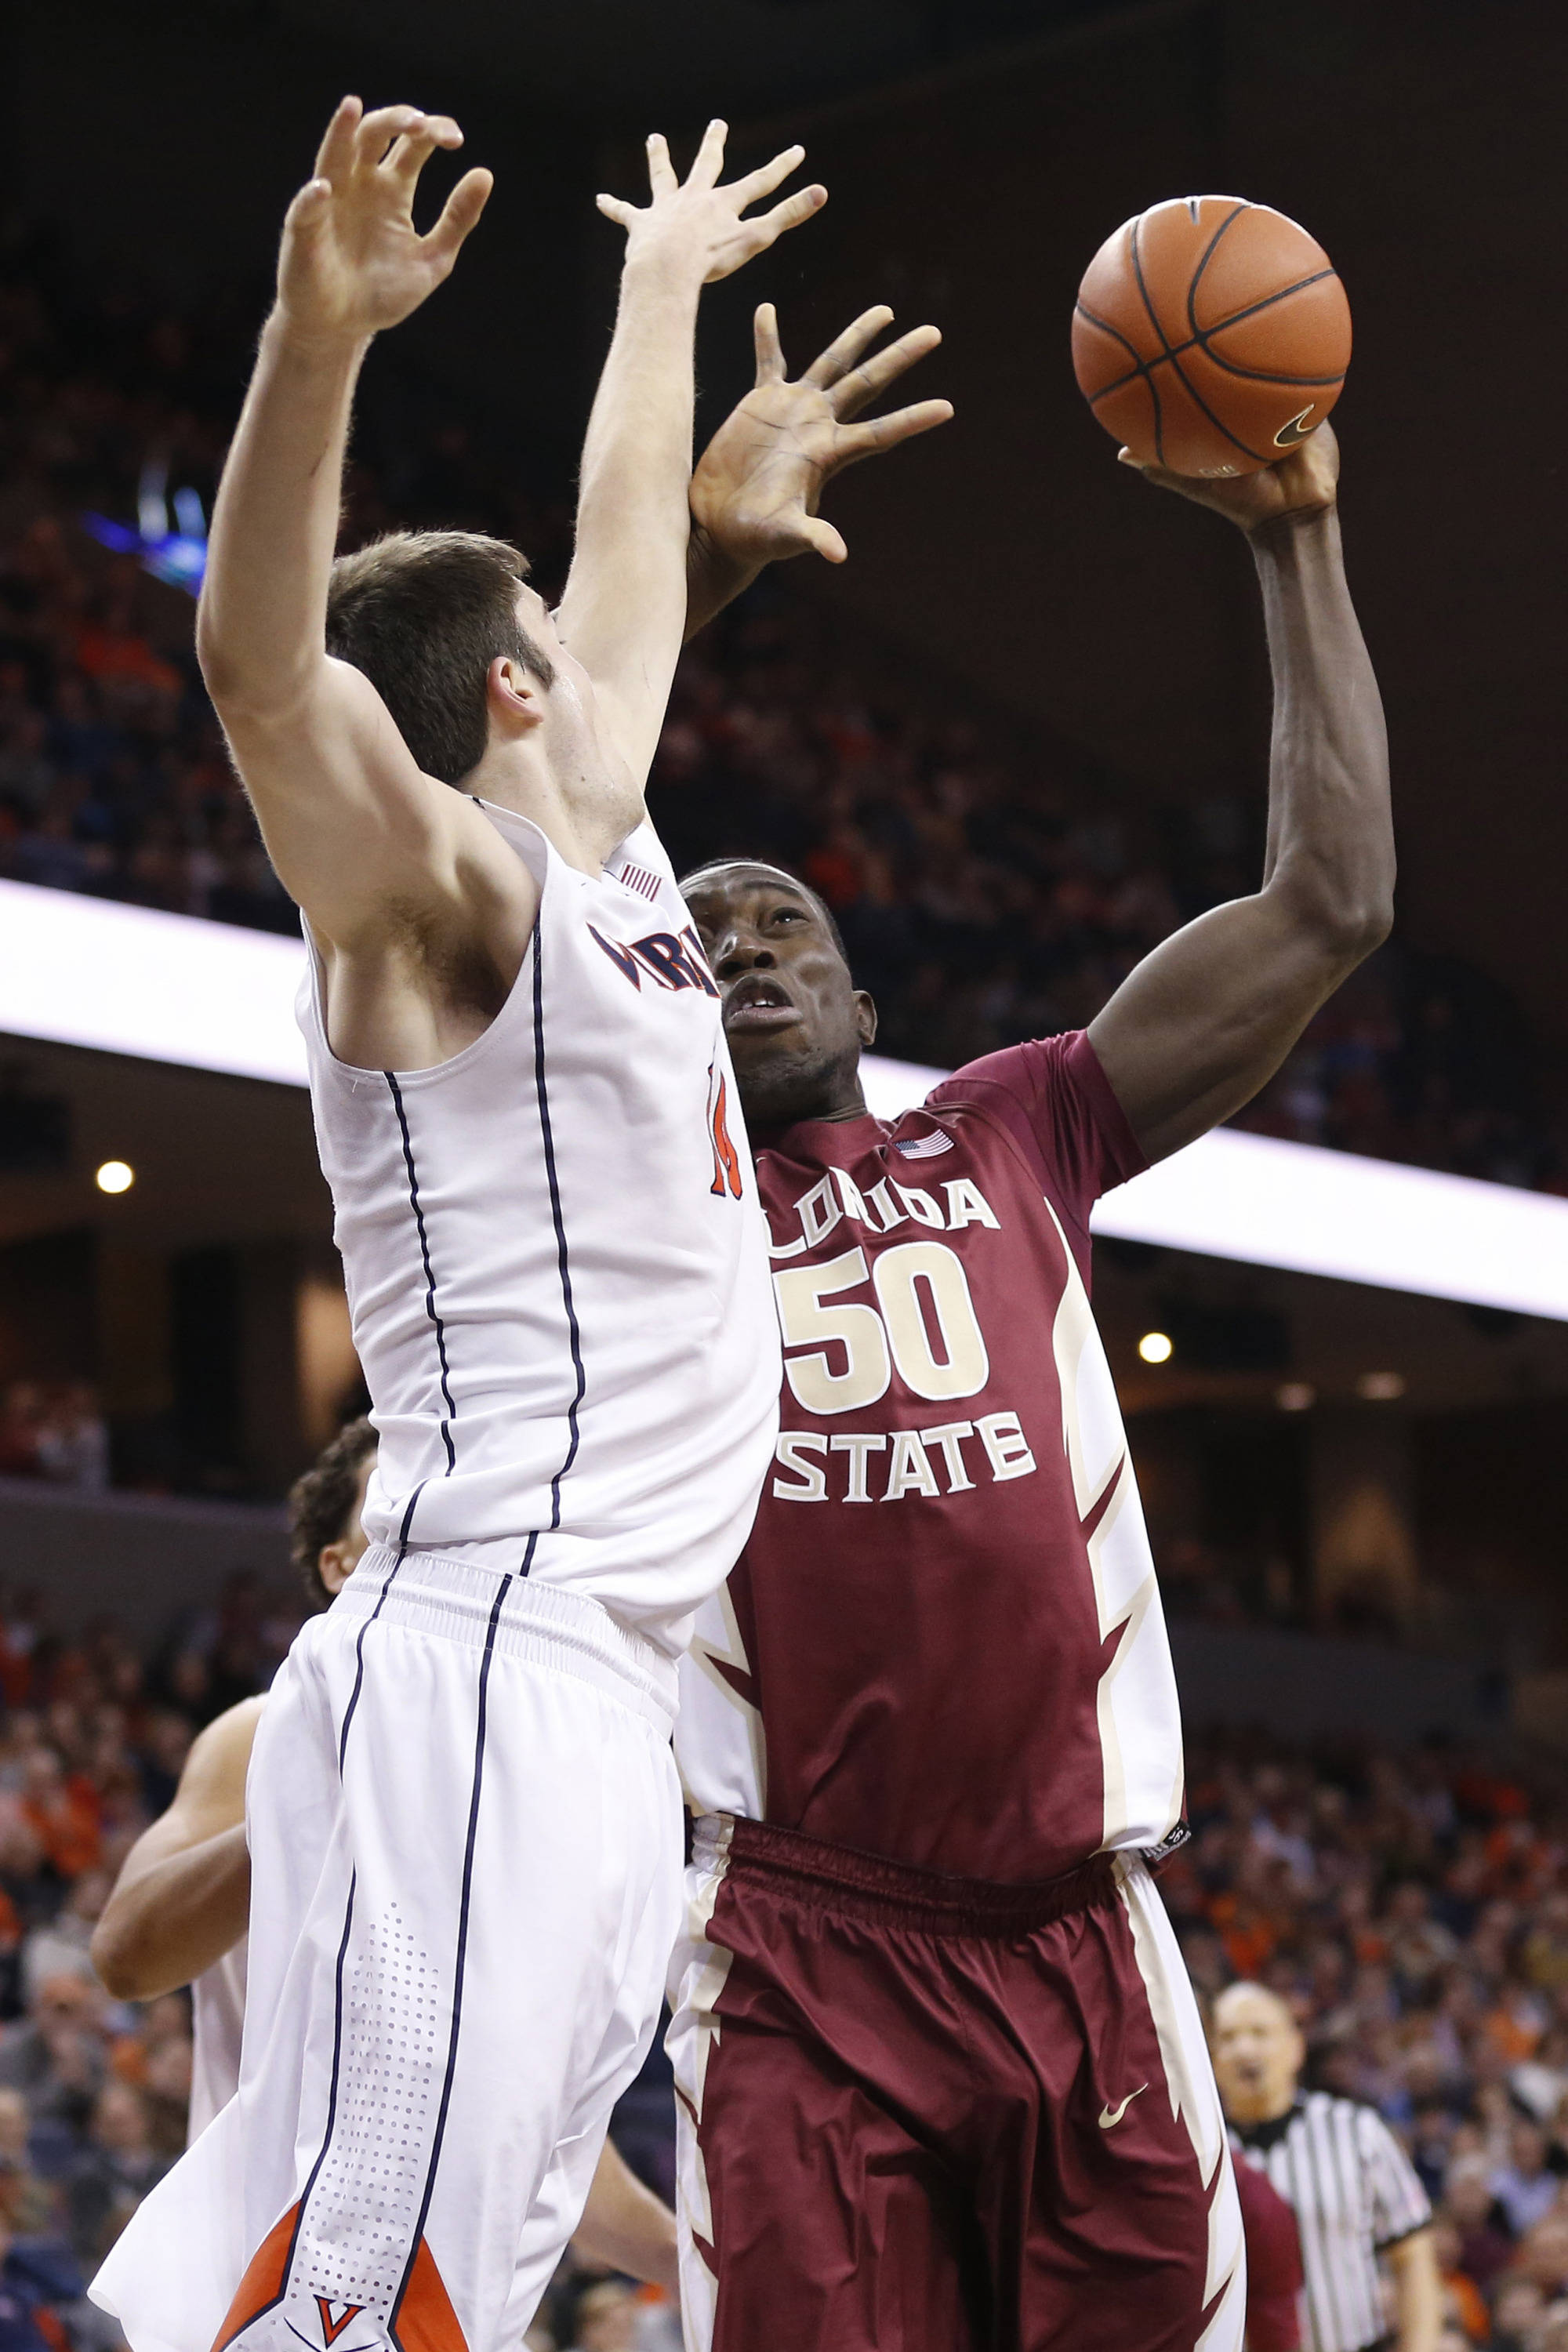 Jan 18, 2014; Charlottesville, VA, USA; Florida State Seminoles center Michael Ojo (50) shoots the ball as Virginia Cavaliers forward/center Mike Tobey (10) defends in the first half at John Paul Jones Arena. Mandatory Credit: Geoff Burke-USA TODAY Sports